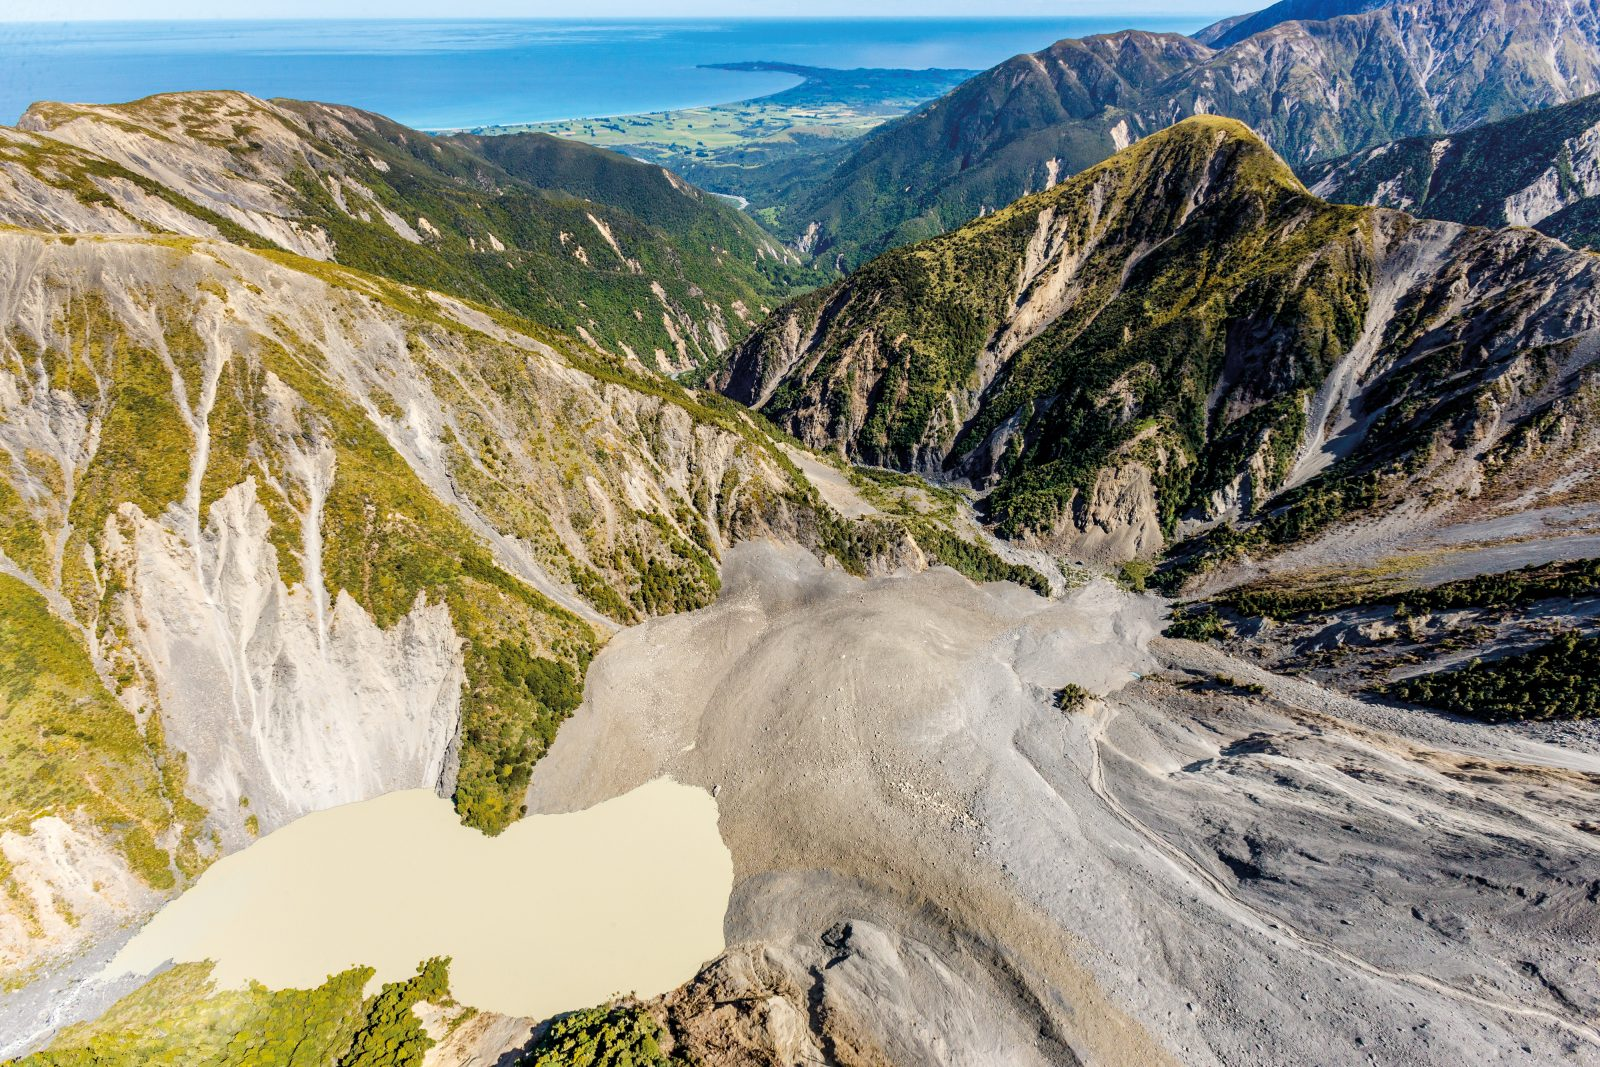 The earthquake and subsequent aftershocks sent 80–100,000 landslides tumbling down mountainsides in Marlborough and Canterbury—presenting an ongoing danger for those downstream. This one blocked the Hapuku River, creating a dam 150 metres high and completely burying Barratt's bivvy, a tiny DOC hut beloved by climbers. Landslide experts are monitoring this and other dams, using computer modelling to anticipate the risks if and when they break.